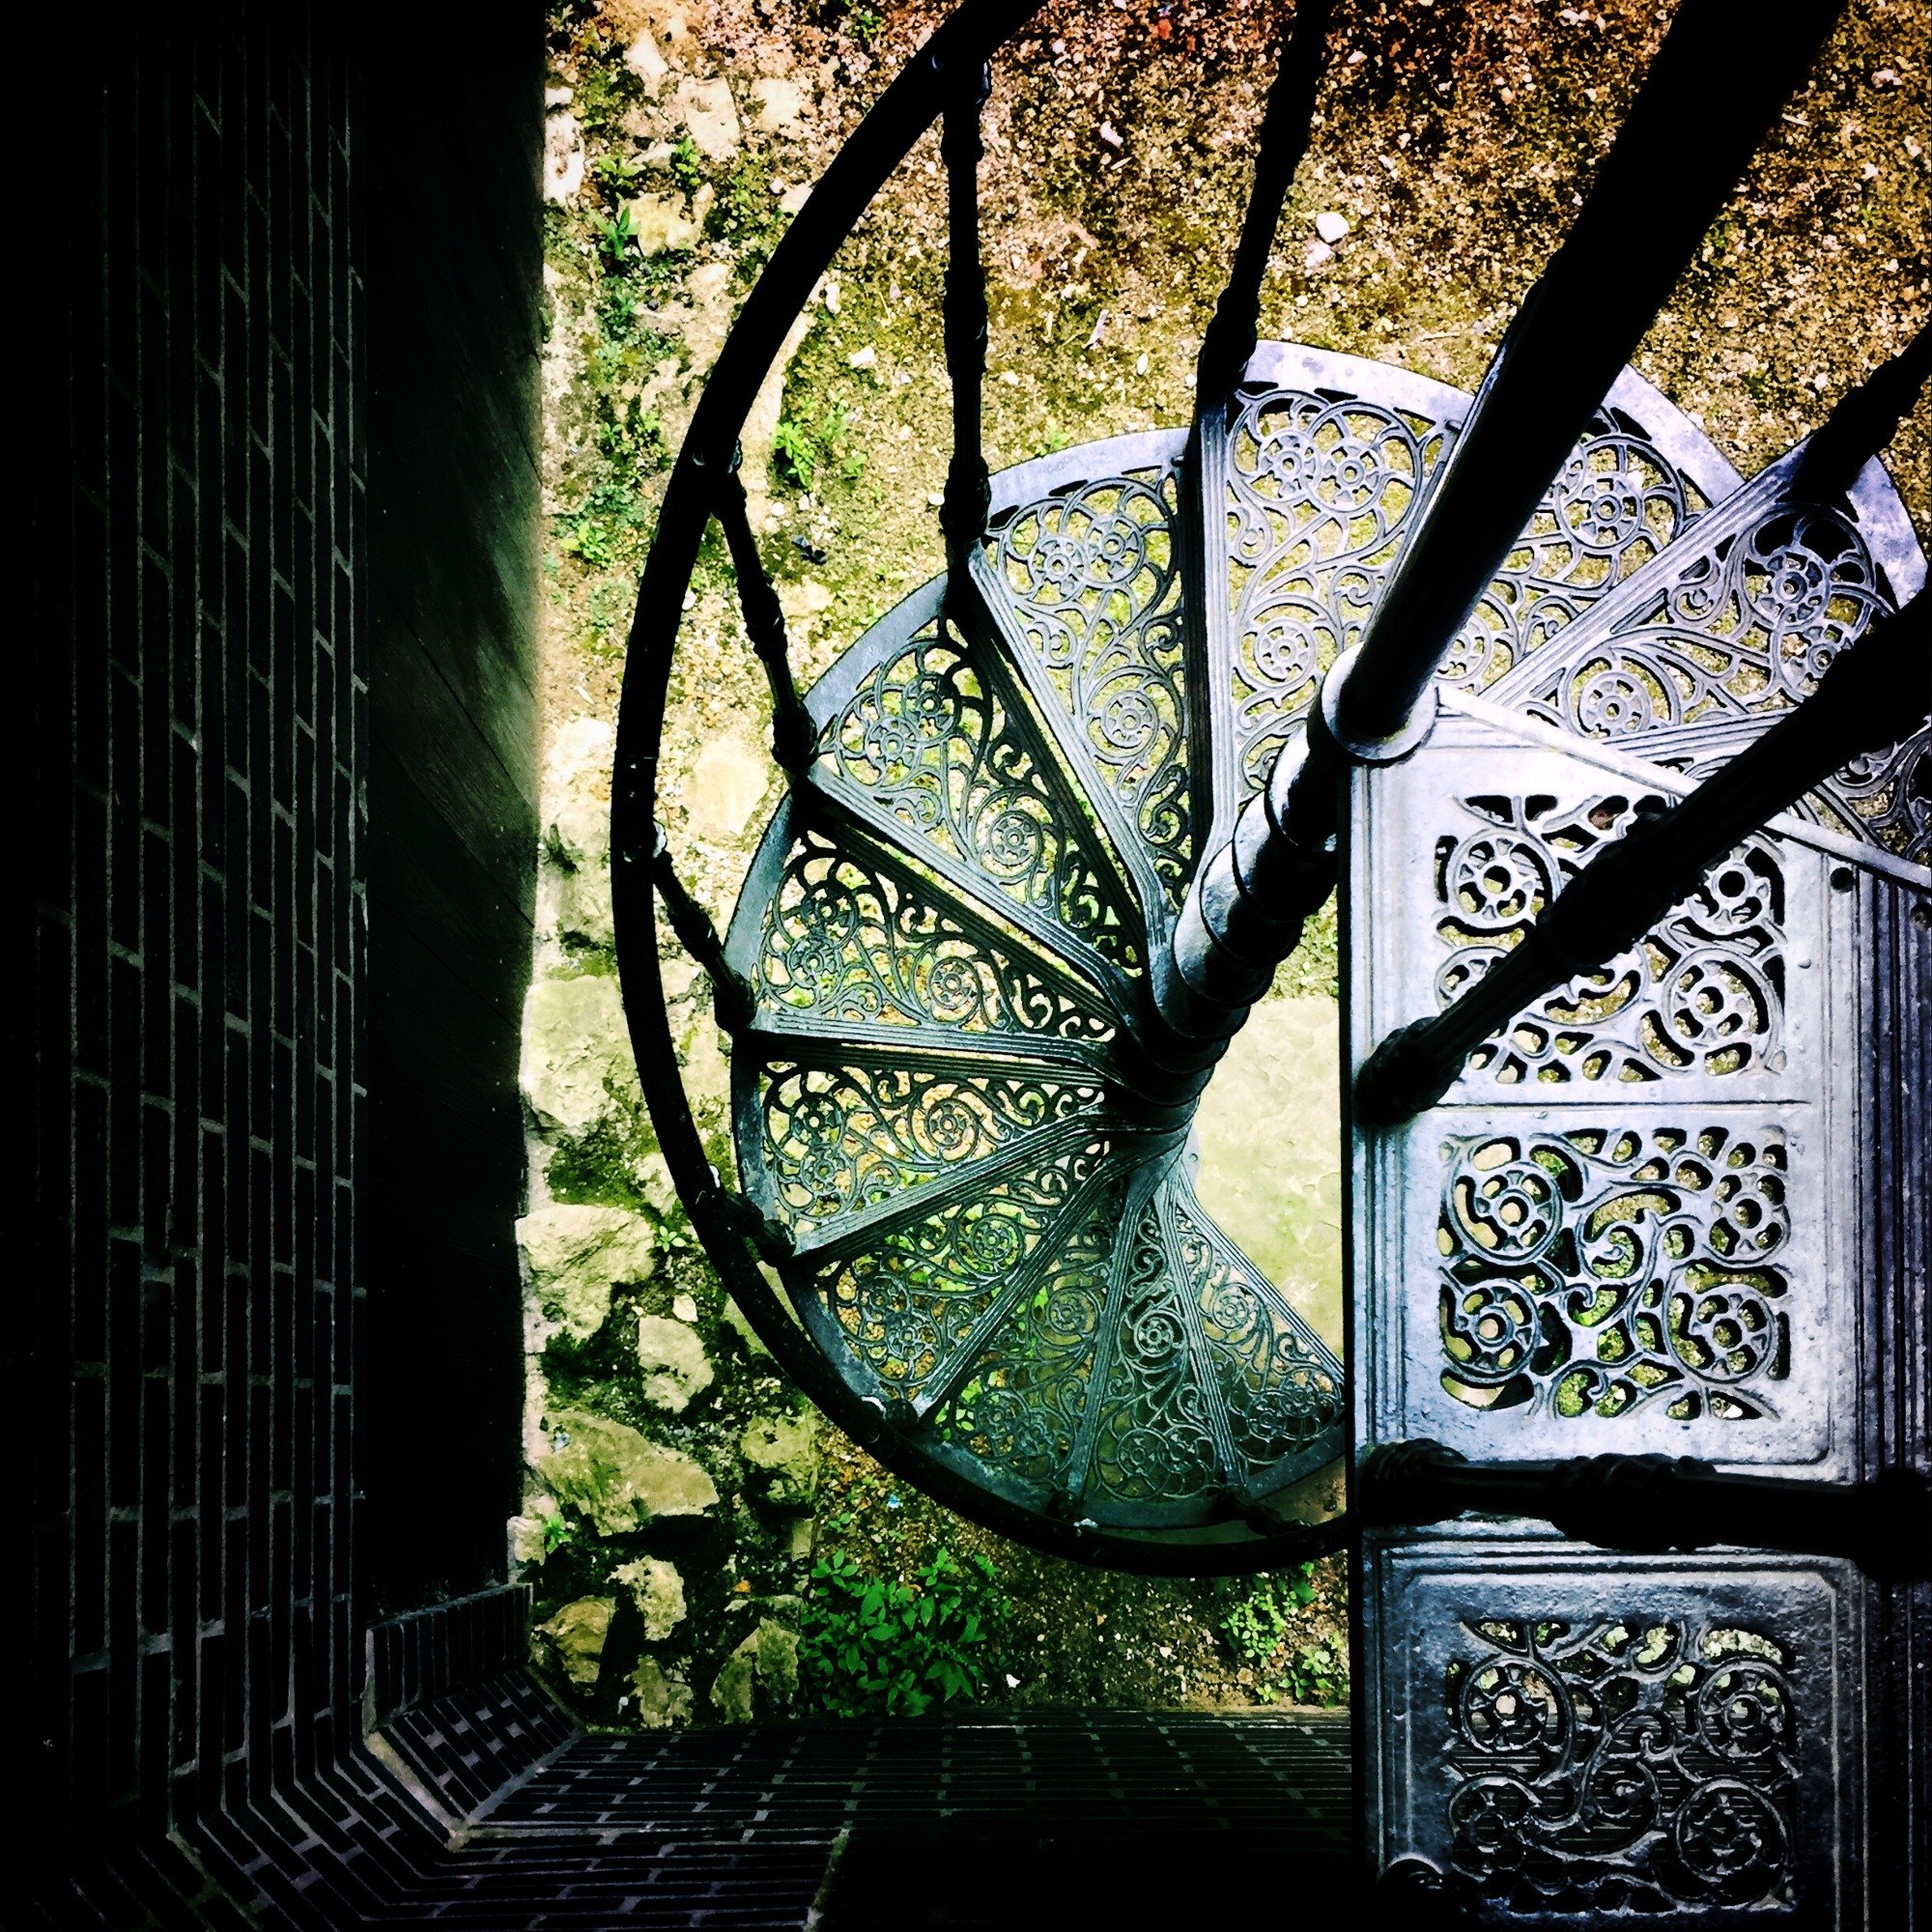 Up a Spiral Staircase